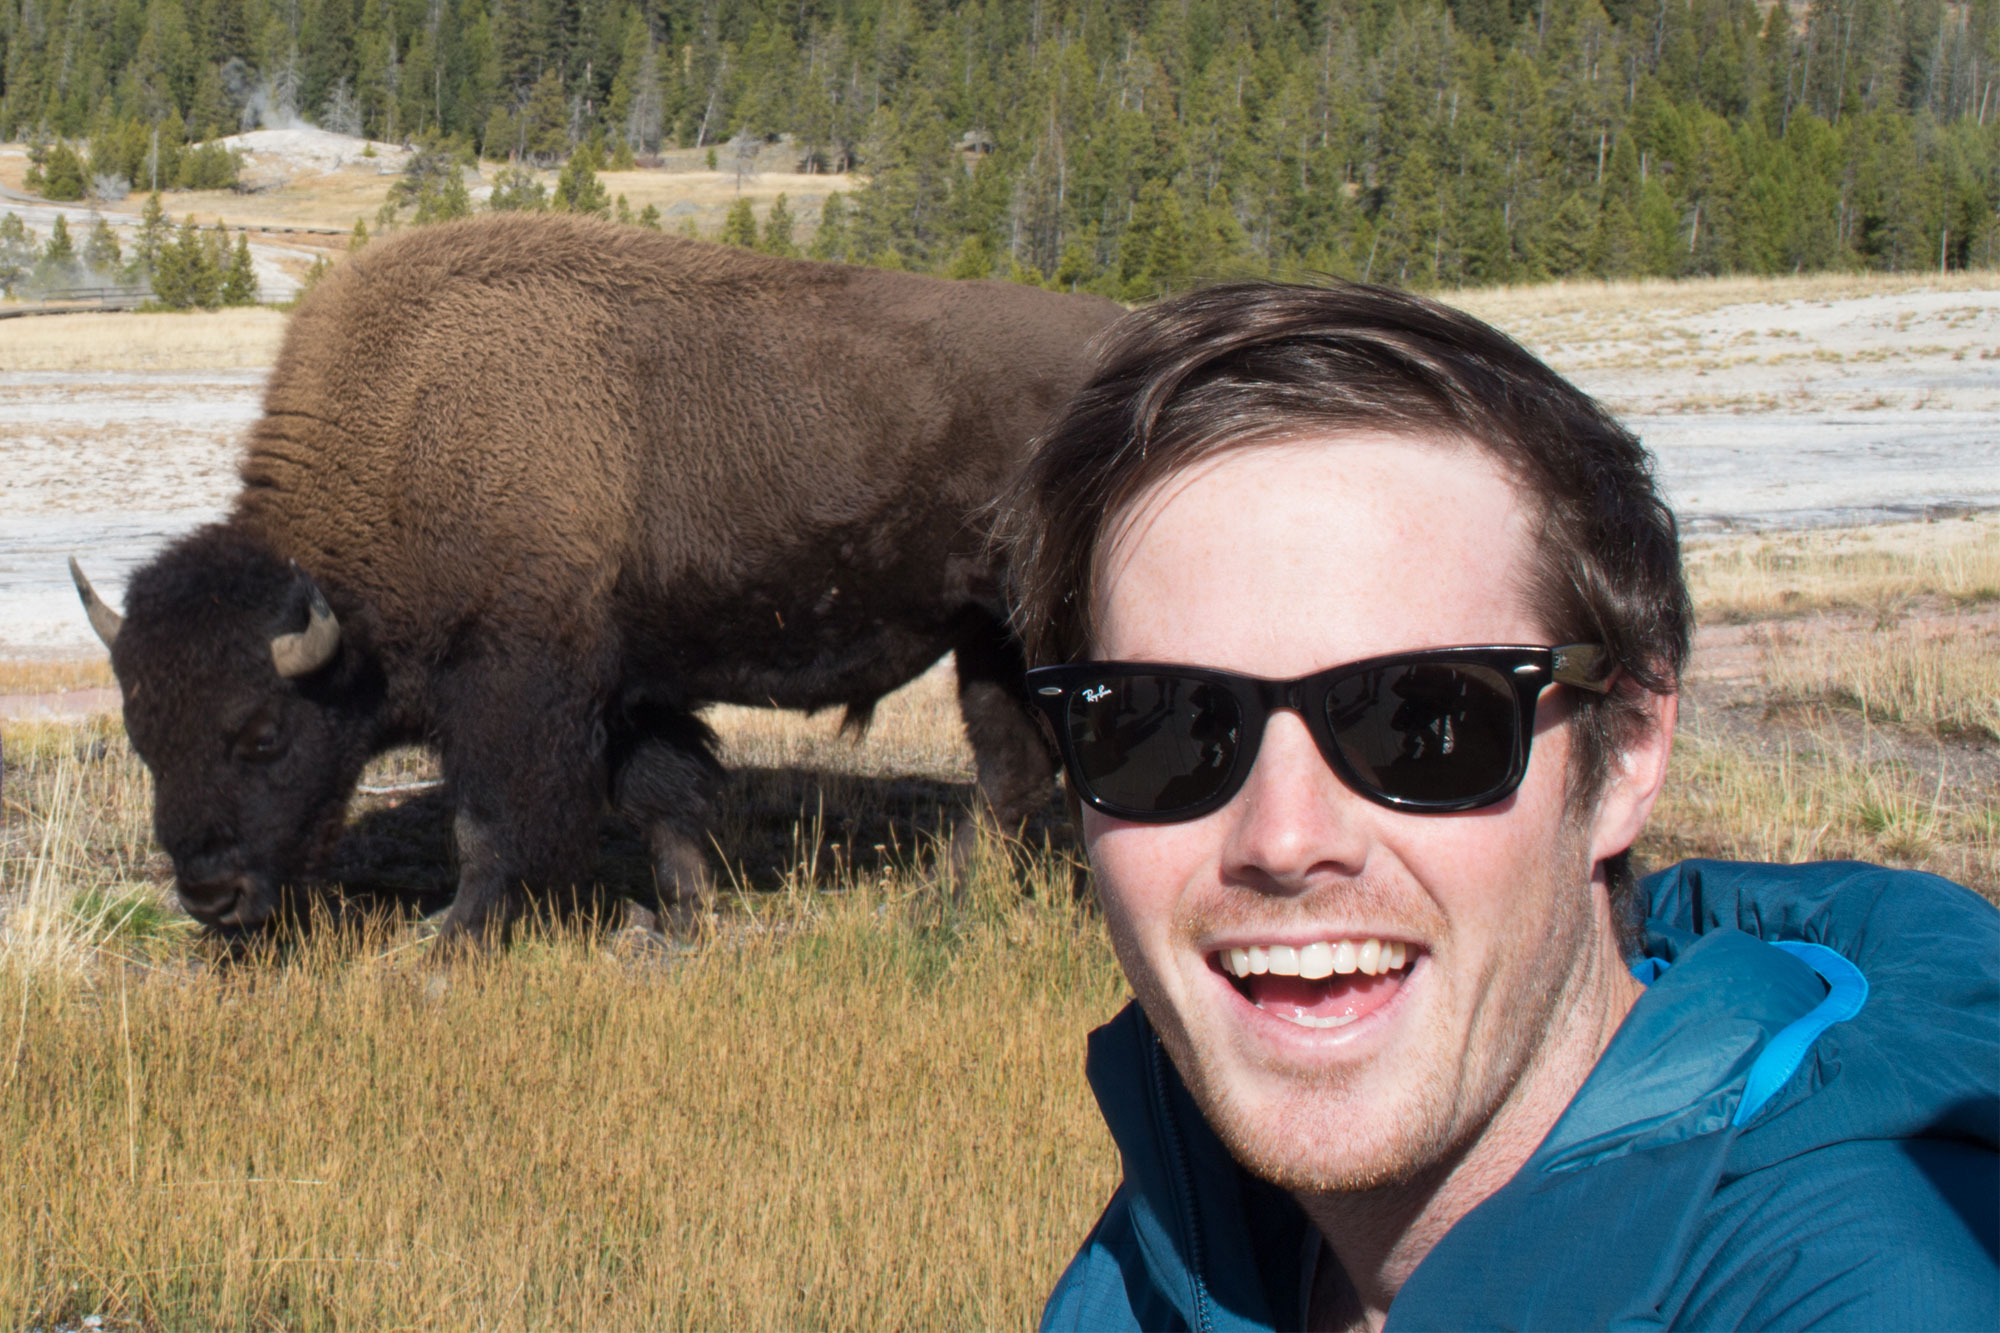 Cal up close to a Bison in Yellowstone National Park